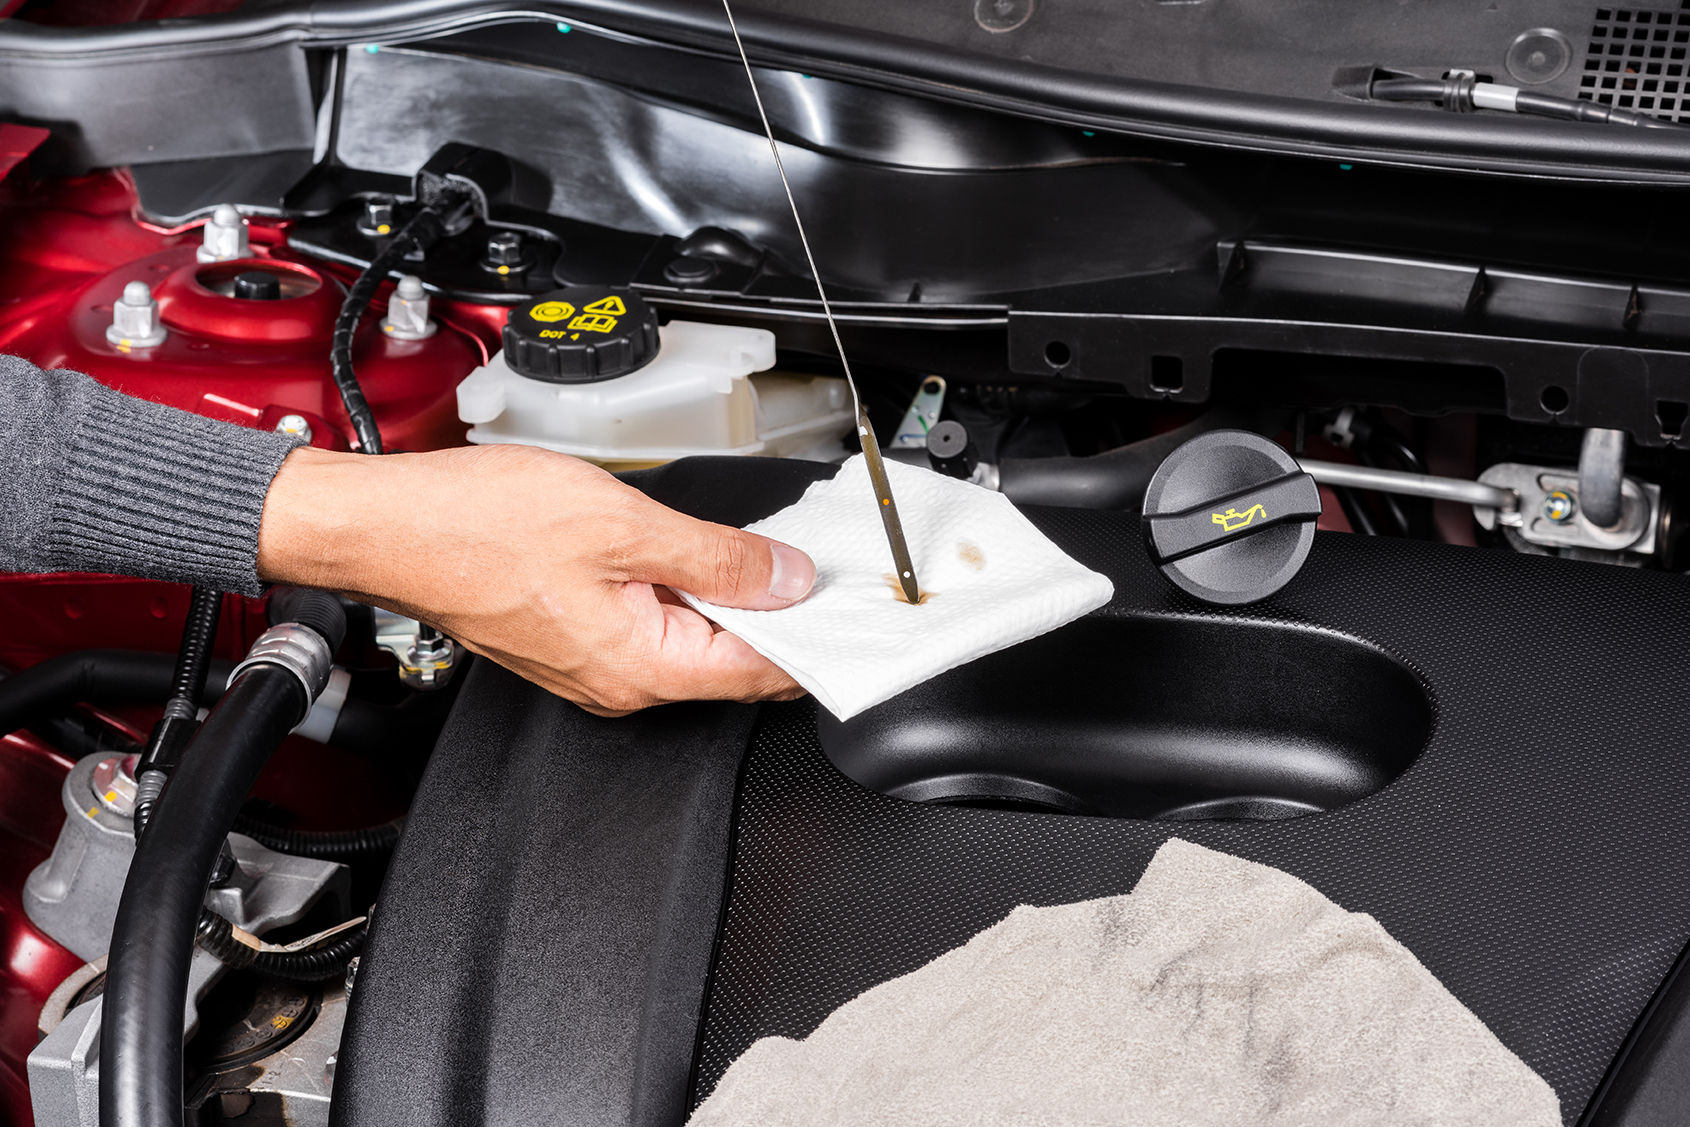 Bridgestone Tyre Clinic Drivers' Essential - Basic Car Maintenance